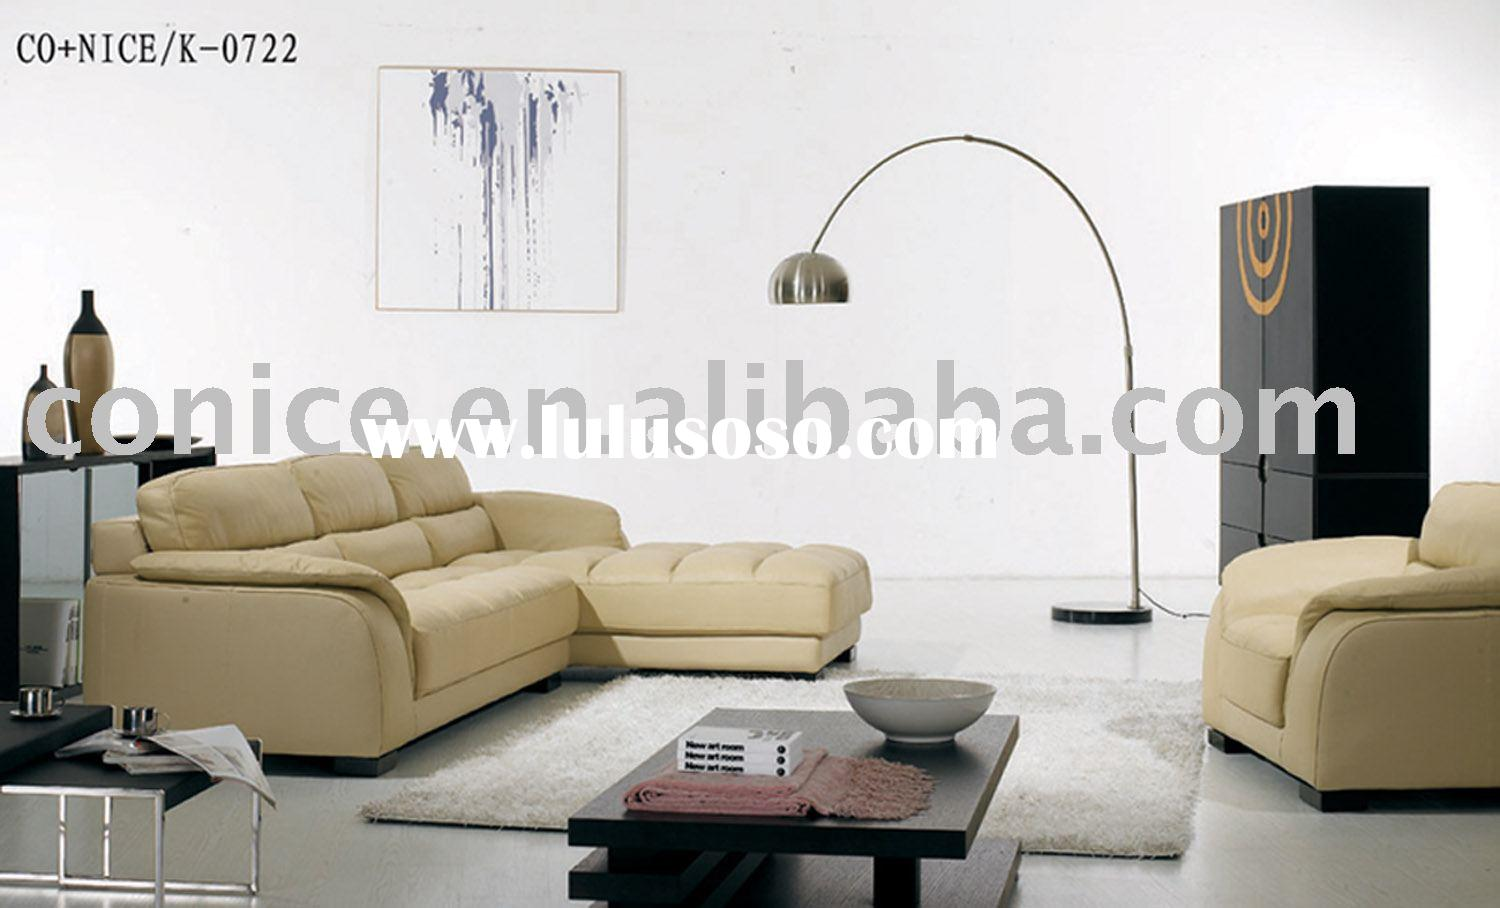 Moroccan Living Room Set Moroccan Living Room Set Manufacturers In Page 1